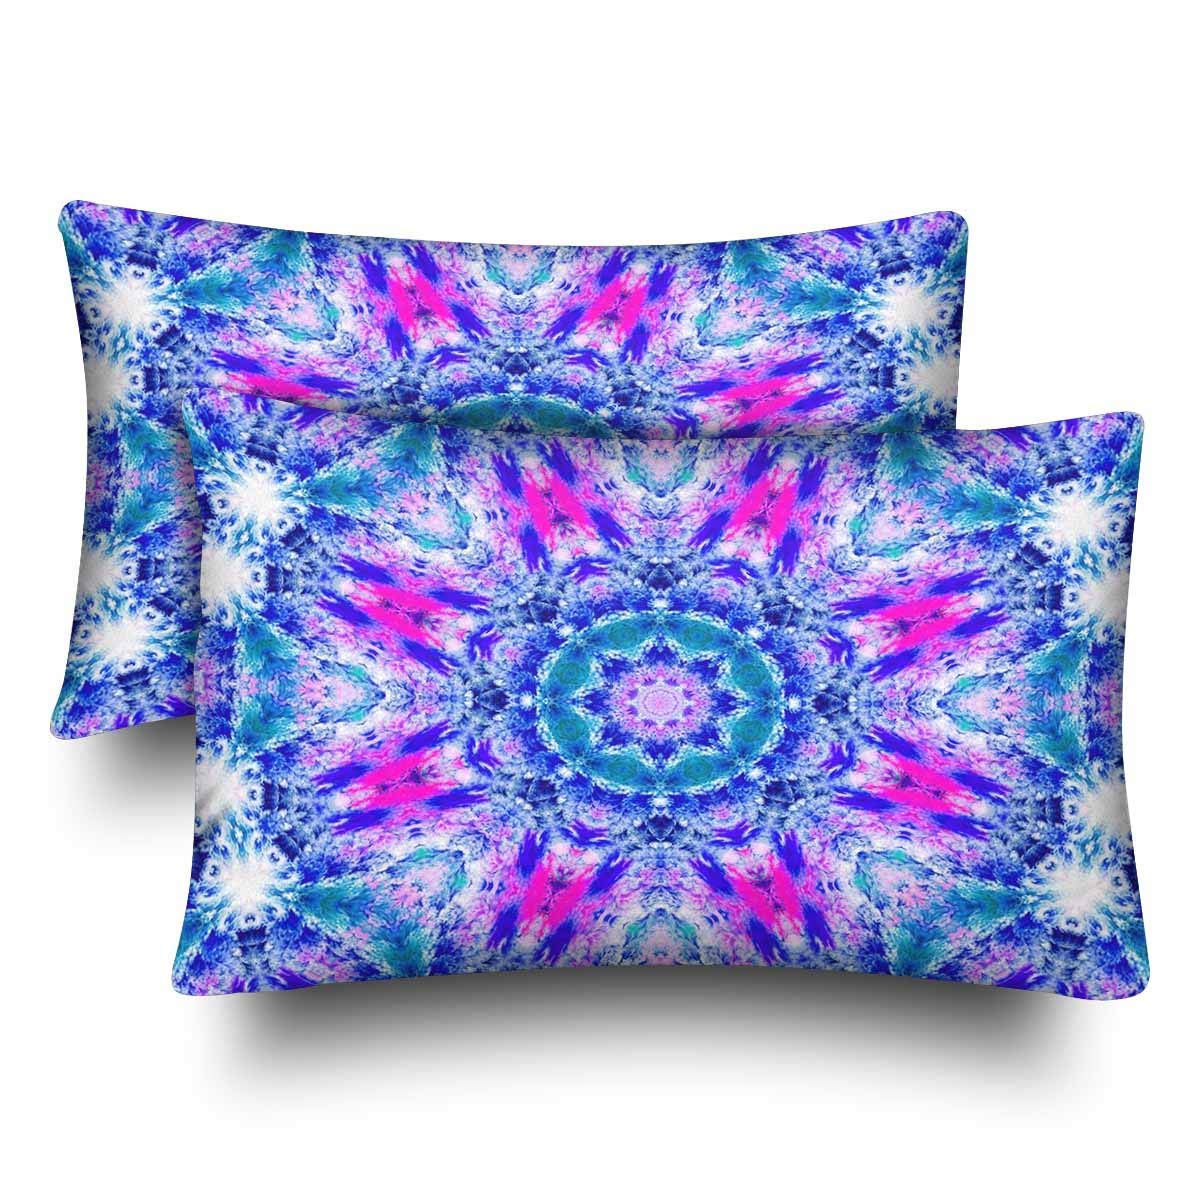 GCKG Abstract Floral Colorful Tie Dye Pillow Cases Pillowcase 20x30 inches Set of 2 Pillow Covers Protector - image 4 of 4